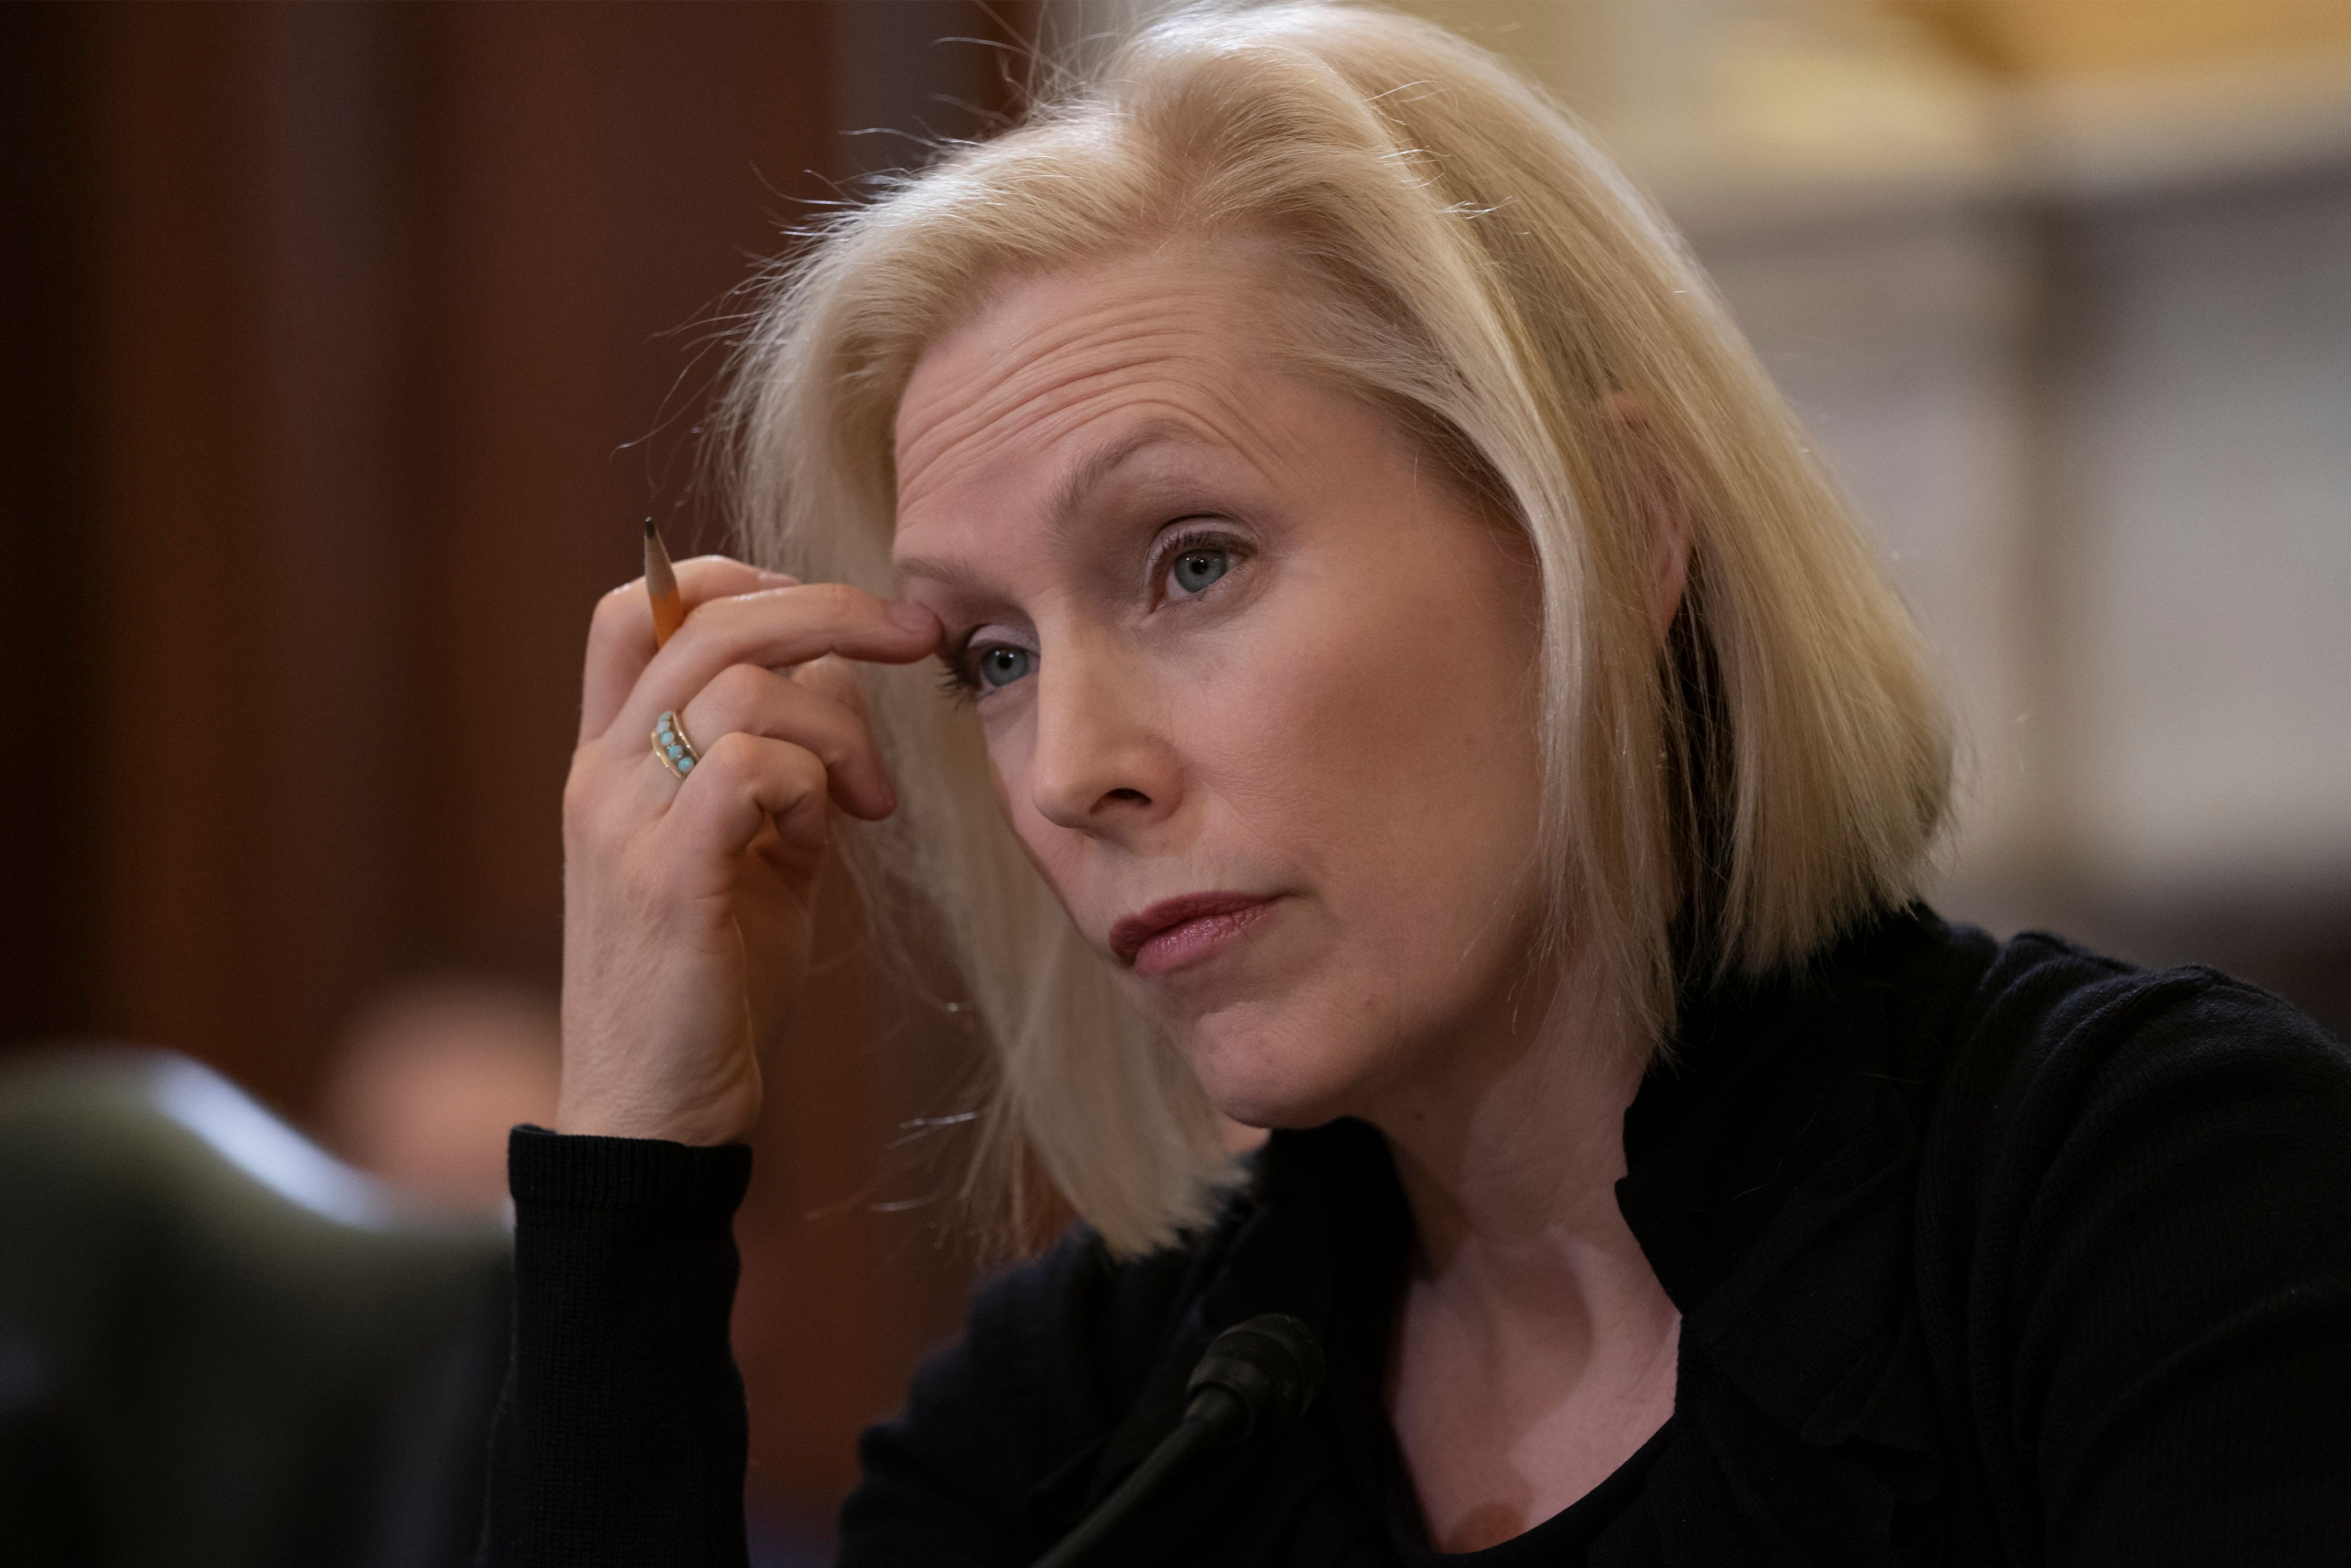 Sen. Kirsten Gillibrand, D-N.Y., the ranking member of the Senate Armed Services Subcommittee on Personnel, listens as the panel holds a hearing about prevention and response to sexual assault in the military, on Capitol Hill in Washington, Wednesday, March 6, 2019. Sen. Martha McSally, R-Ariz., recounted her own experience while serving as a colonel in the Air Force. (AP Photo/J. Scott Applewhite)